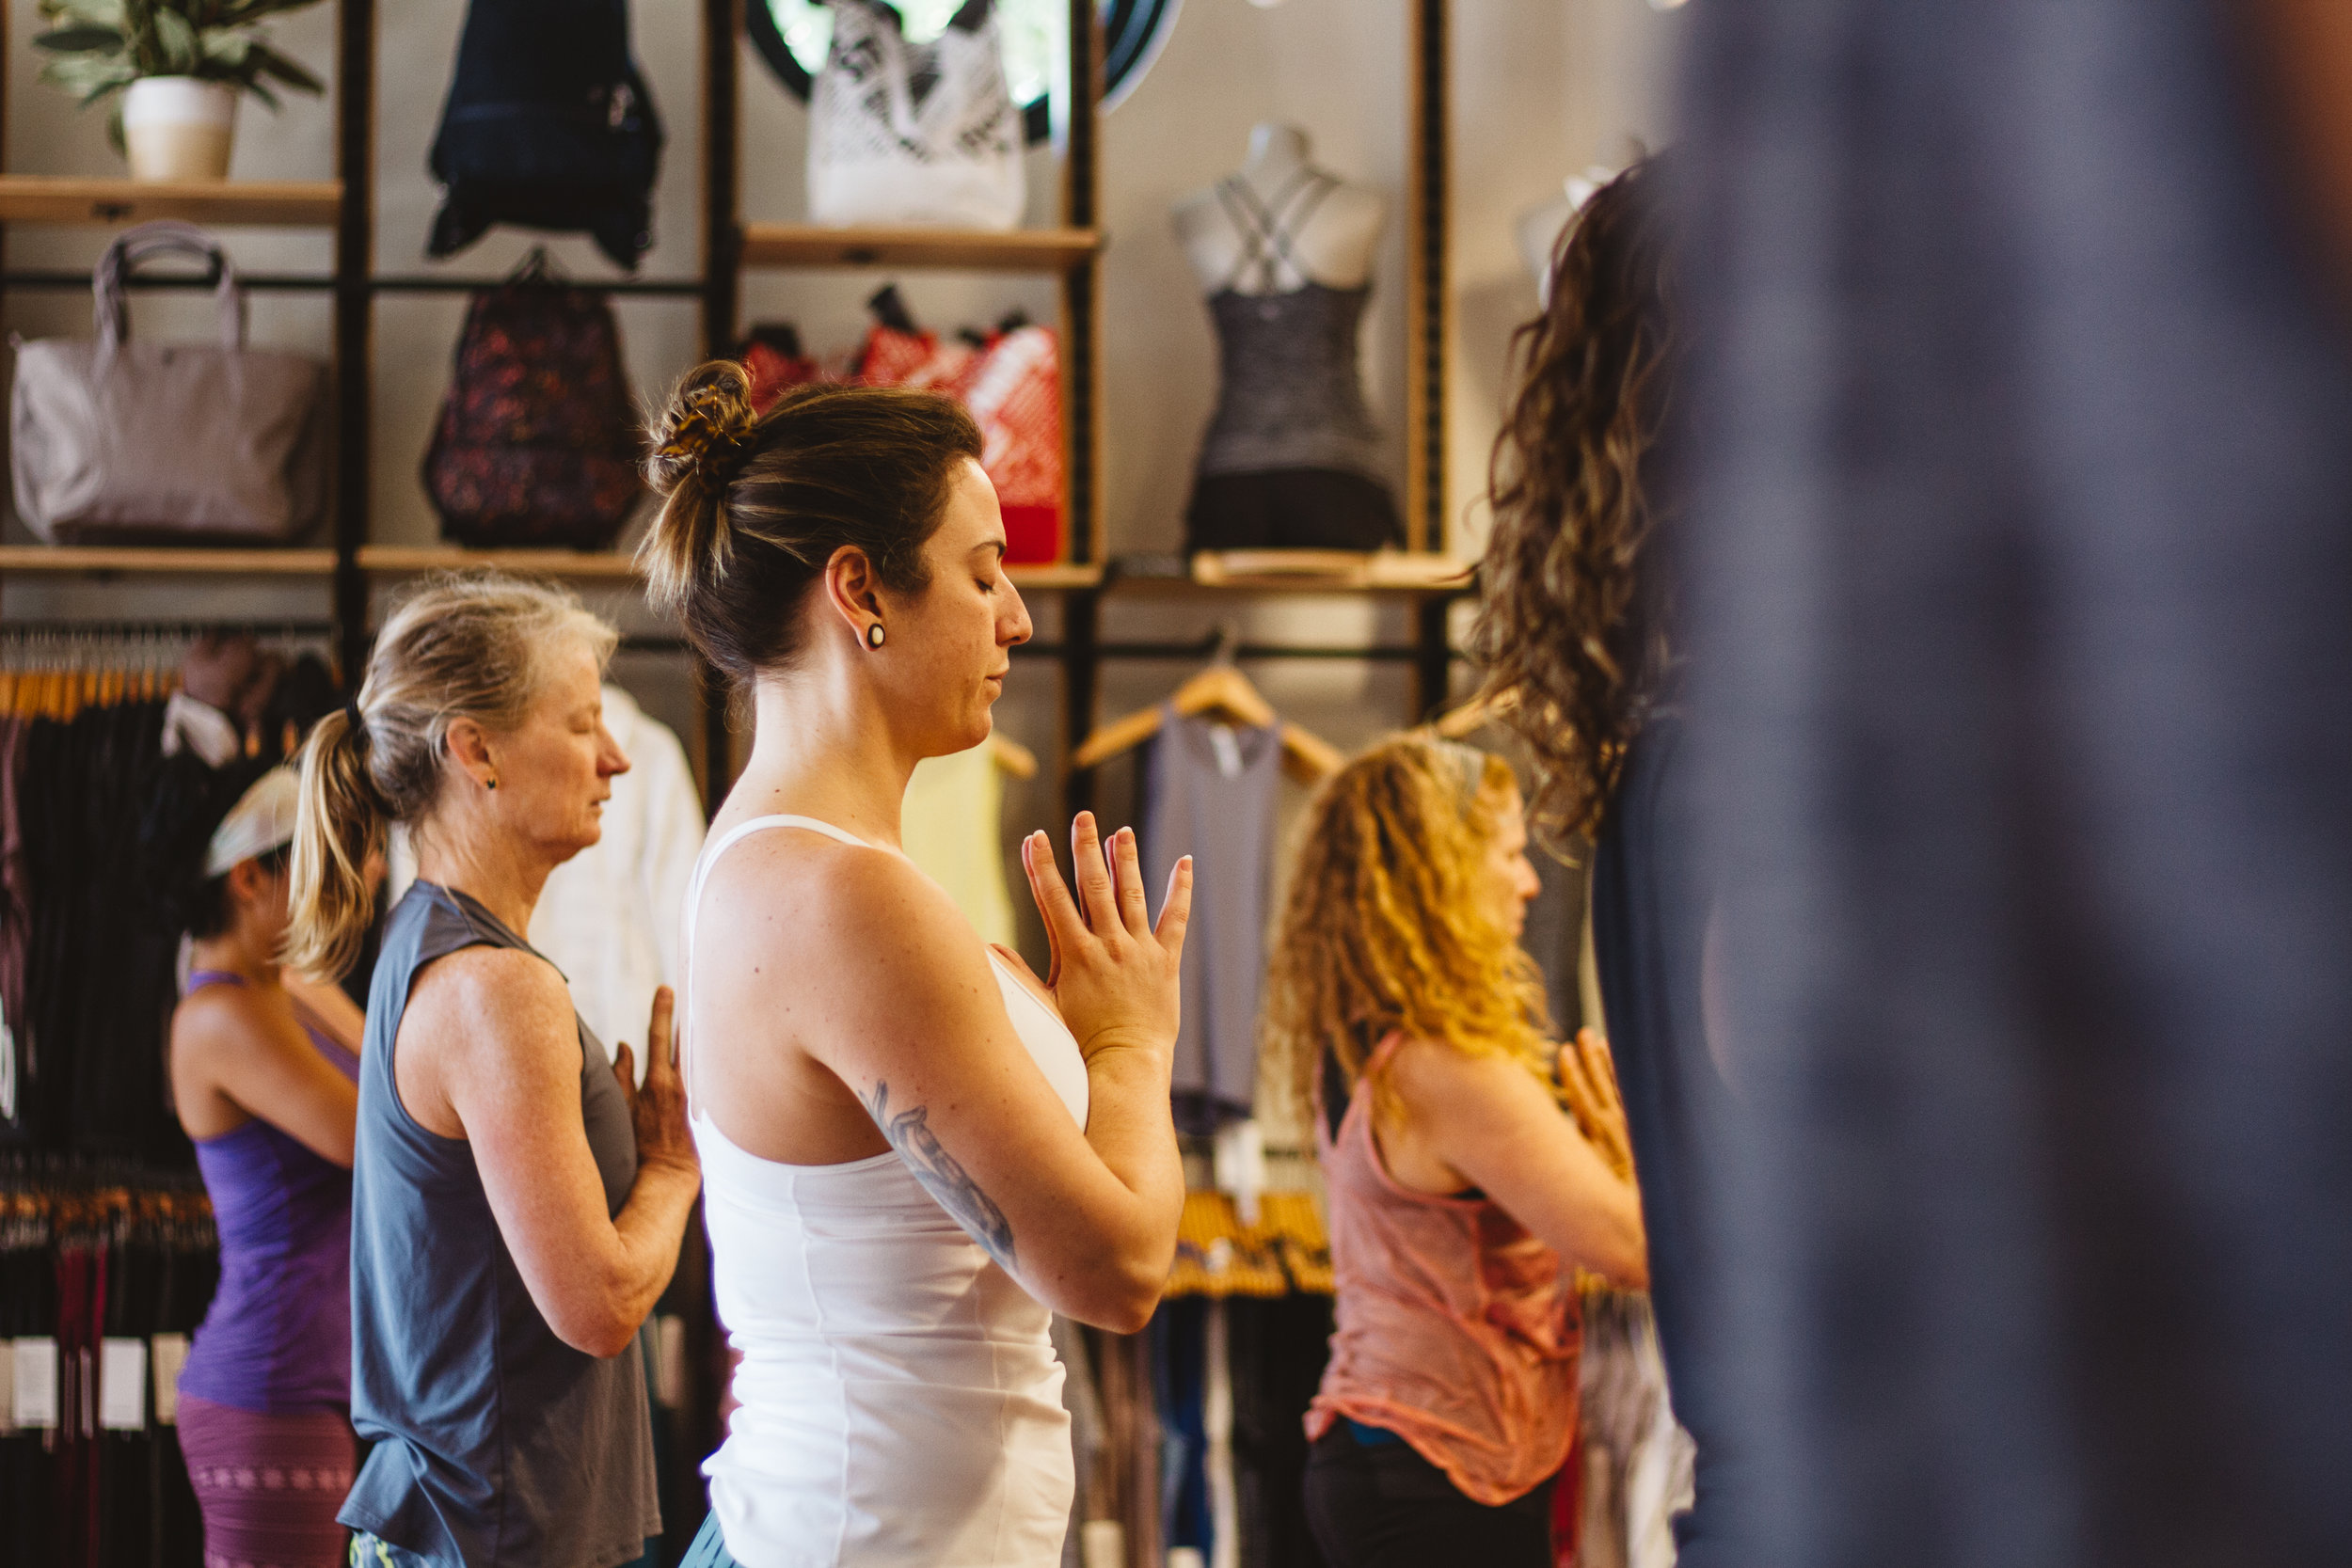 lululemon_chandra-29.jpg